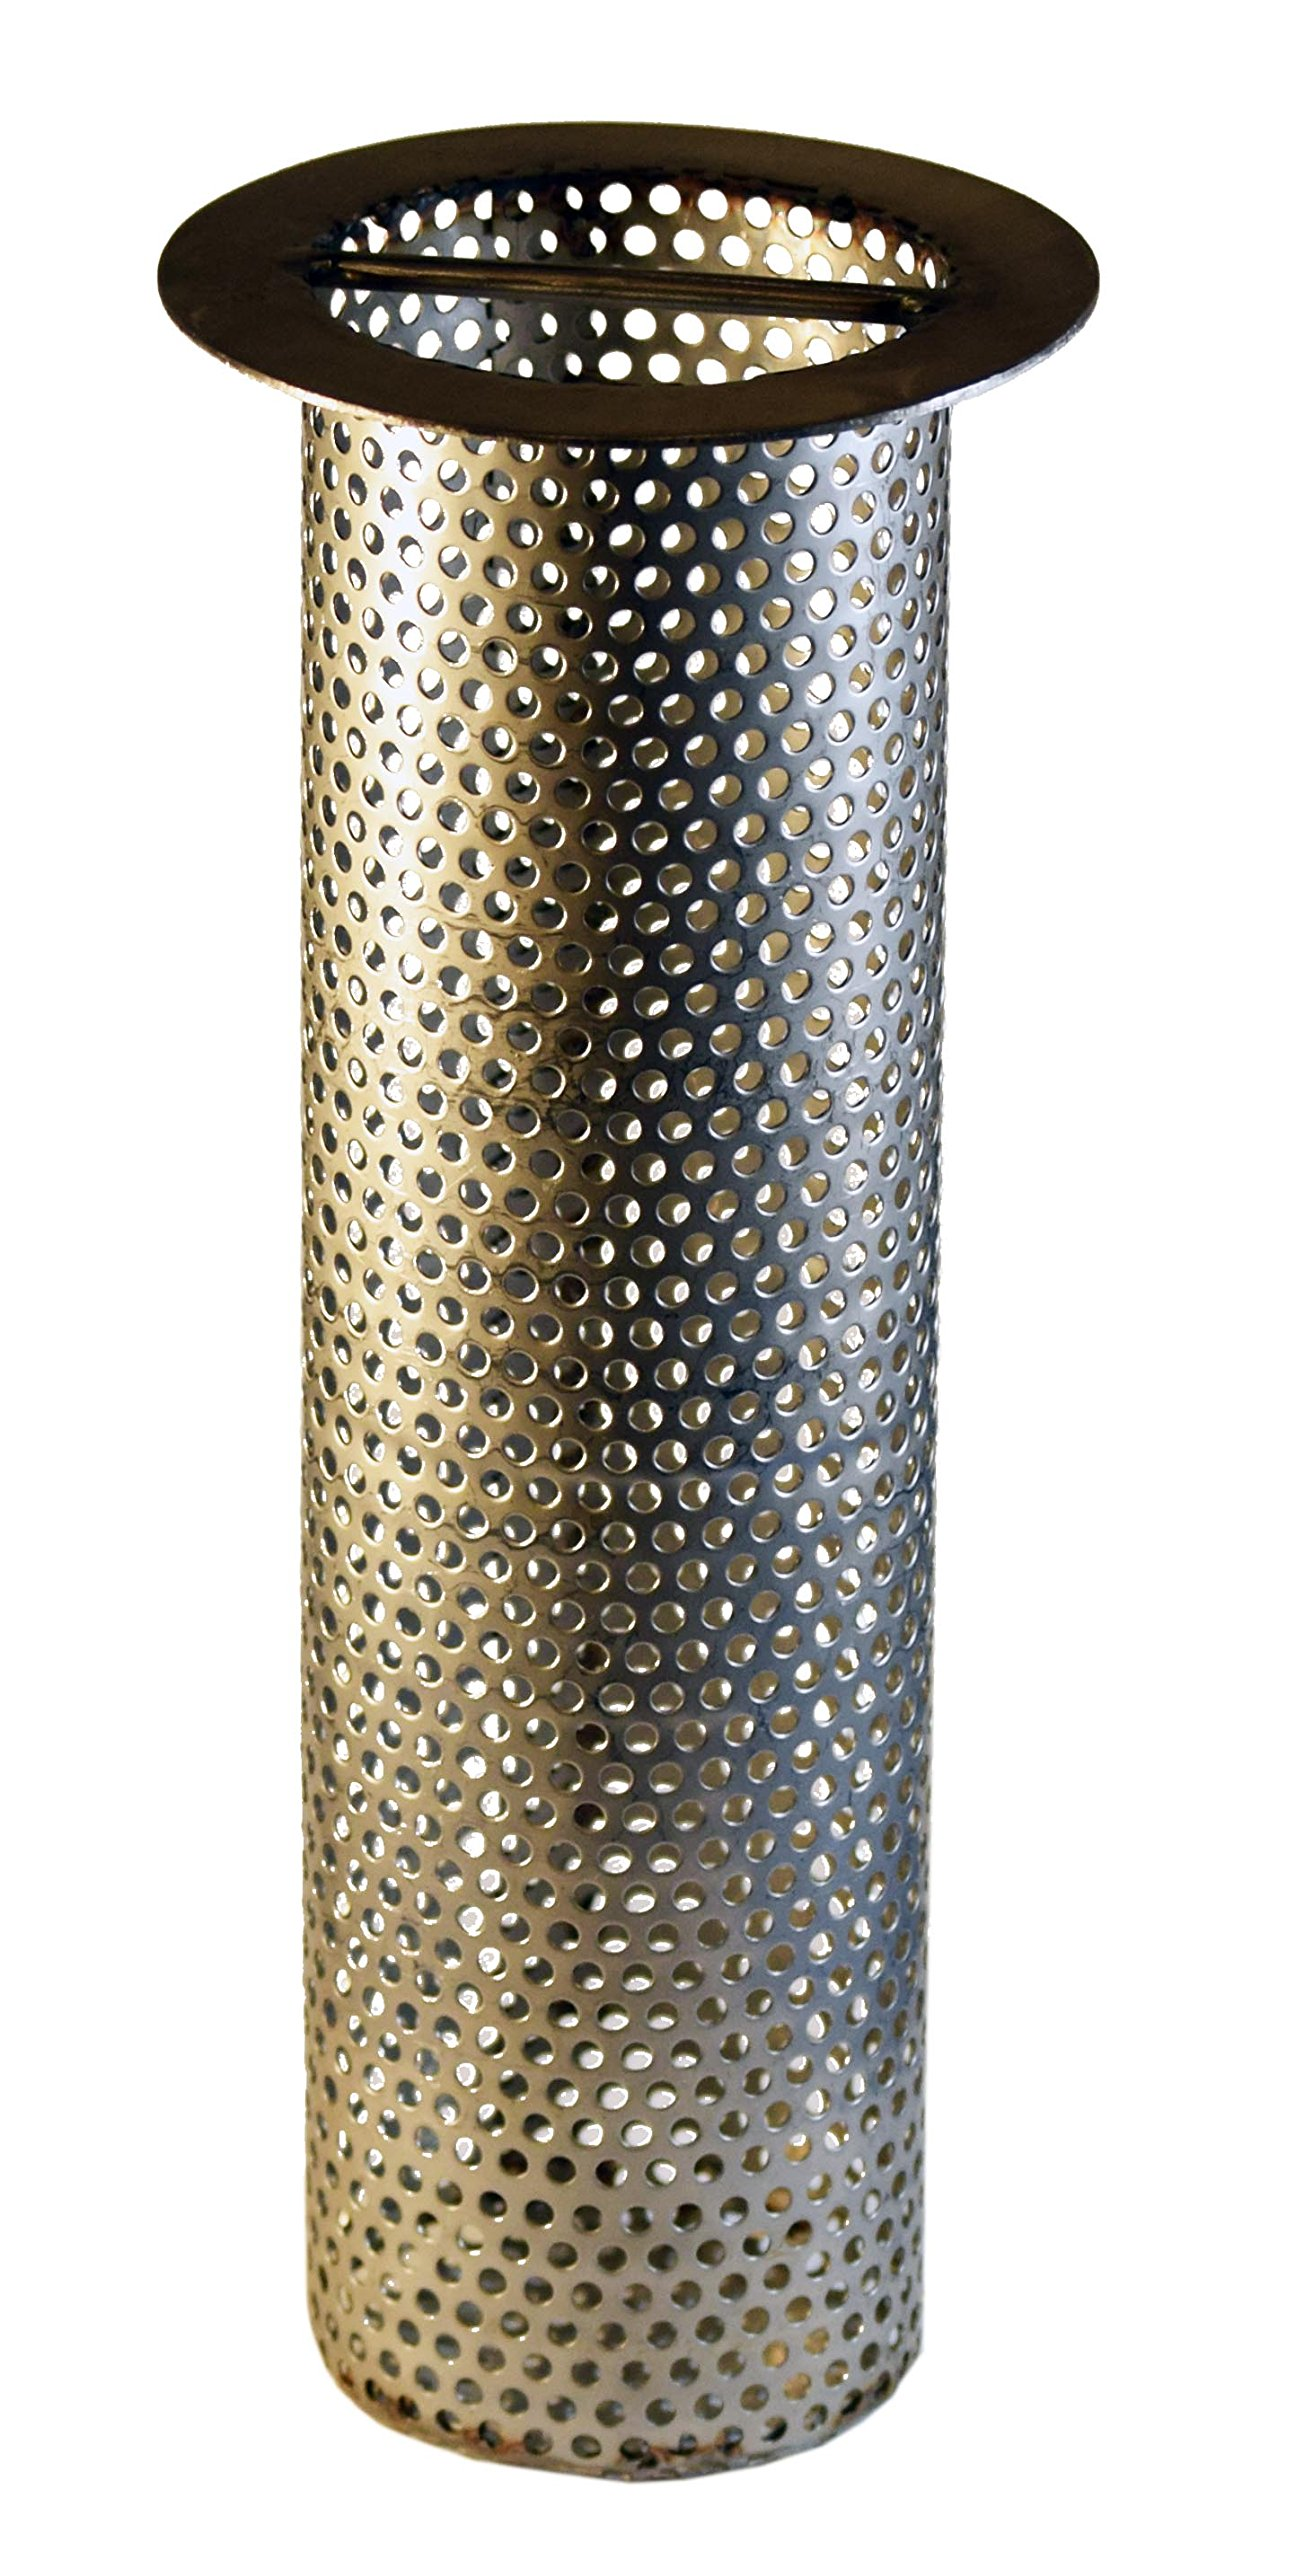 3'' Commercial Floor Drain Strainer, Perforated Stainless Steel, 8'' tall